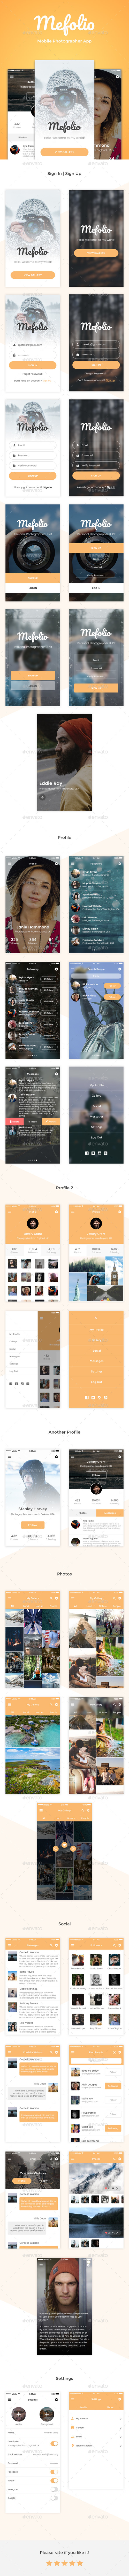 Mifolio - Mobile Photographer App (User Interfaces)